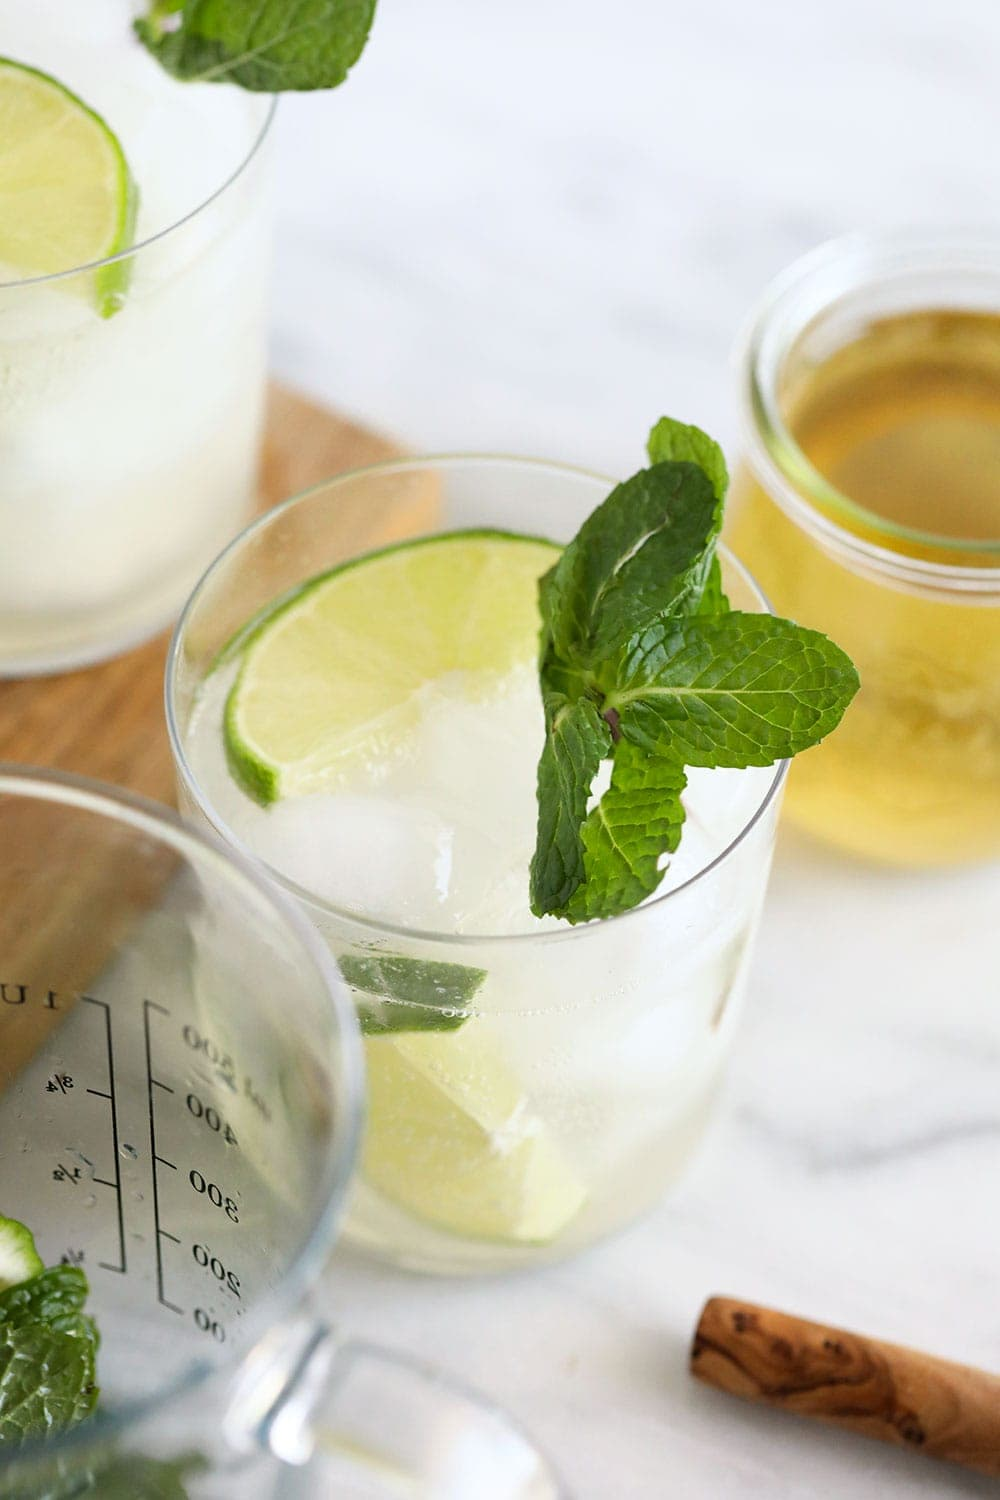 Mint and lime hard seltzer in a glass